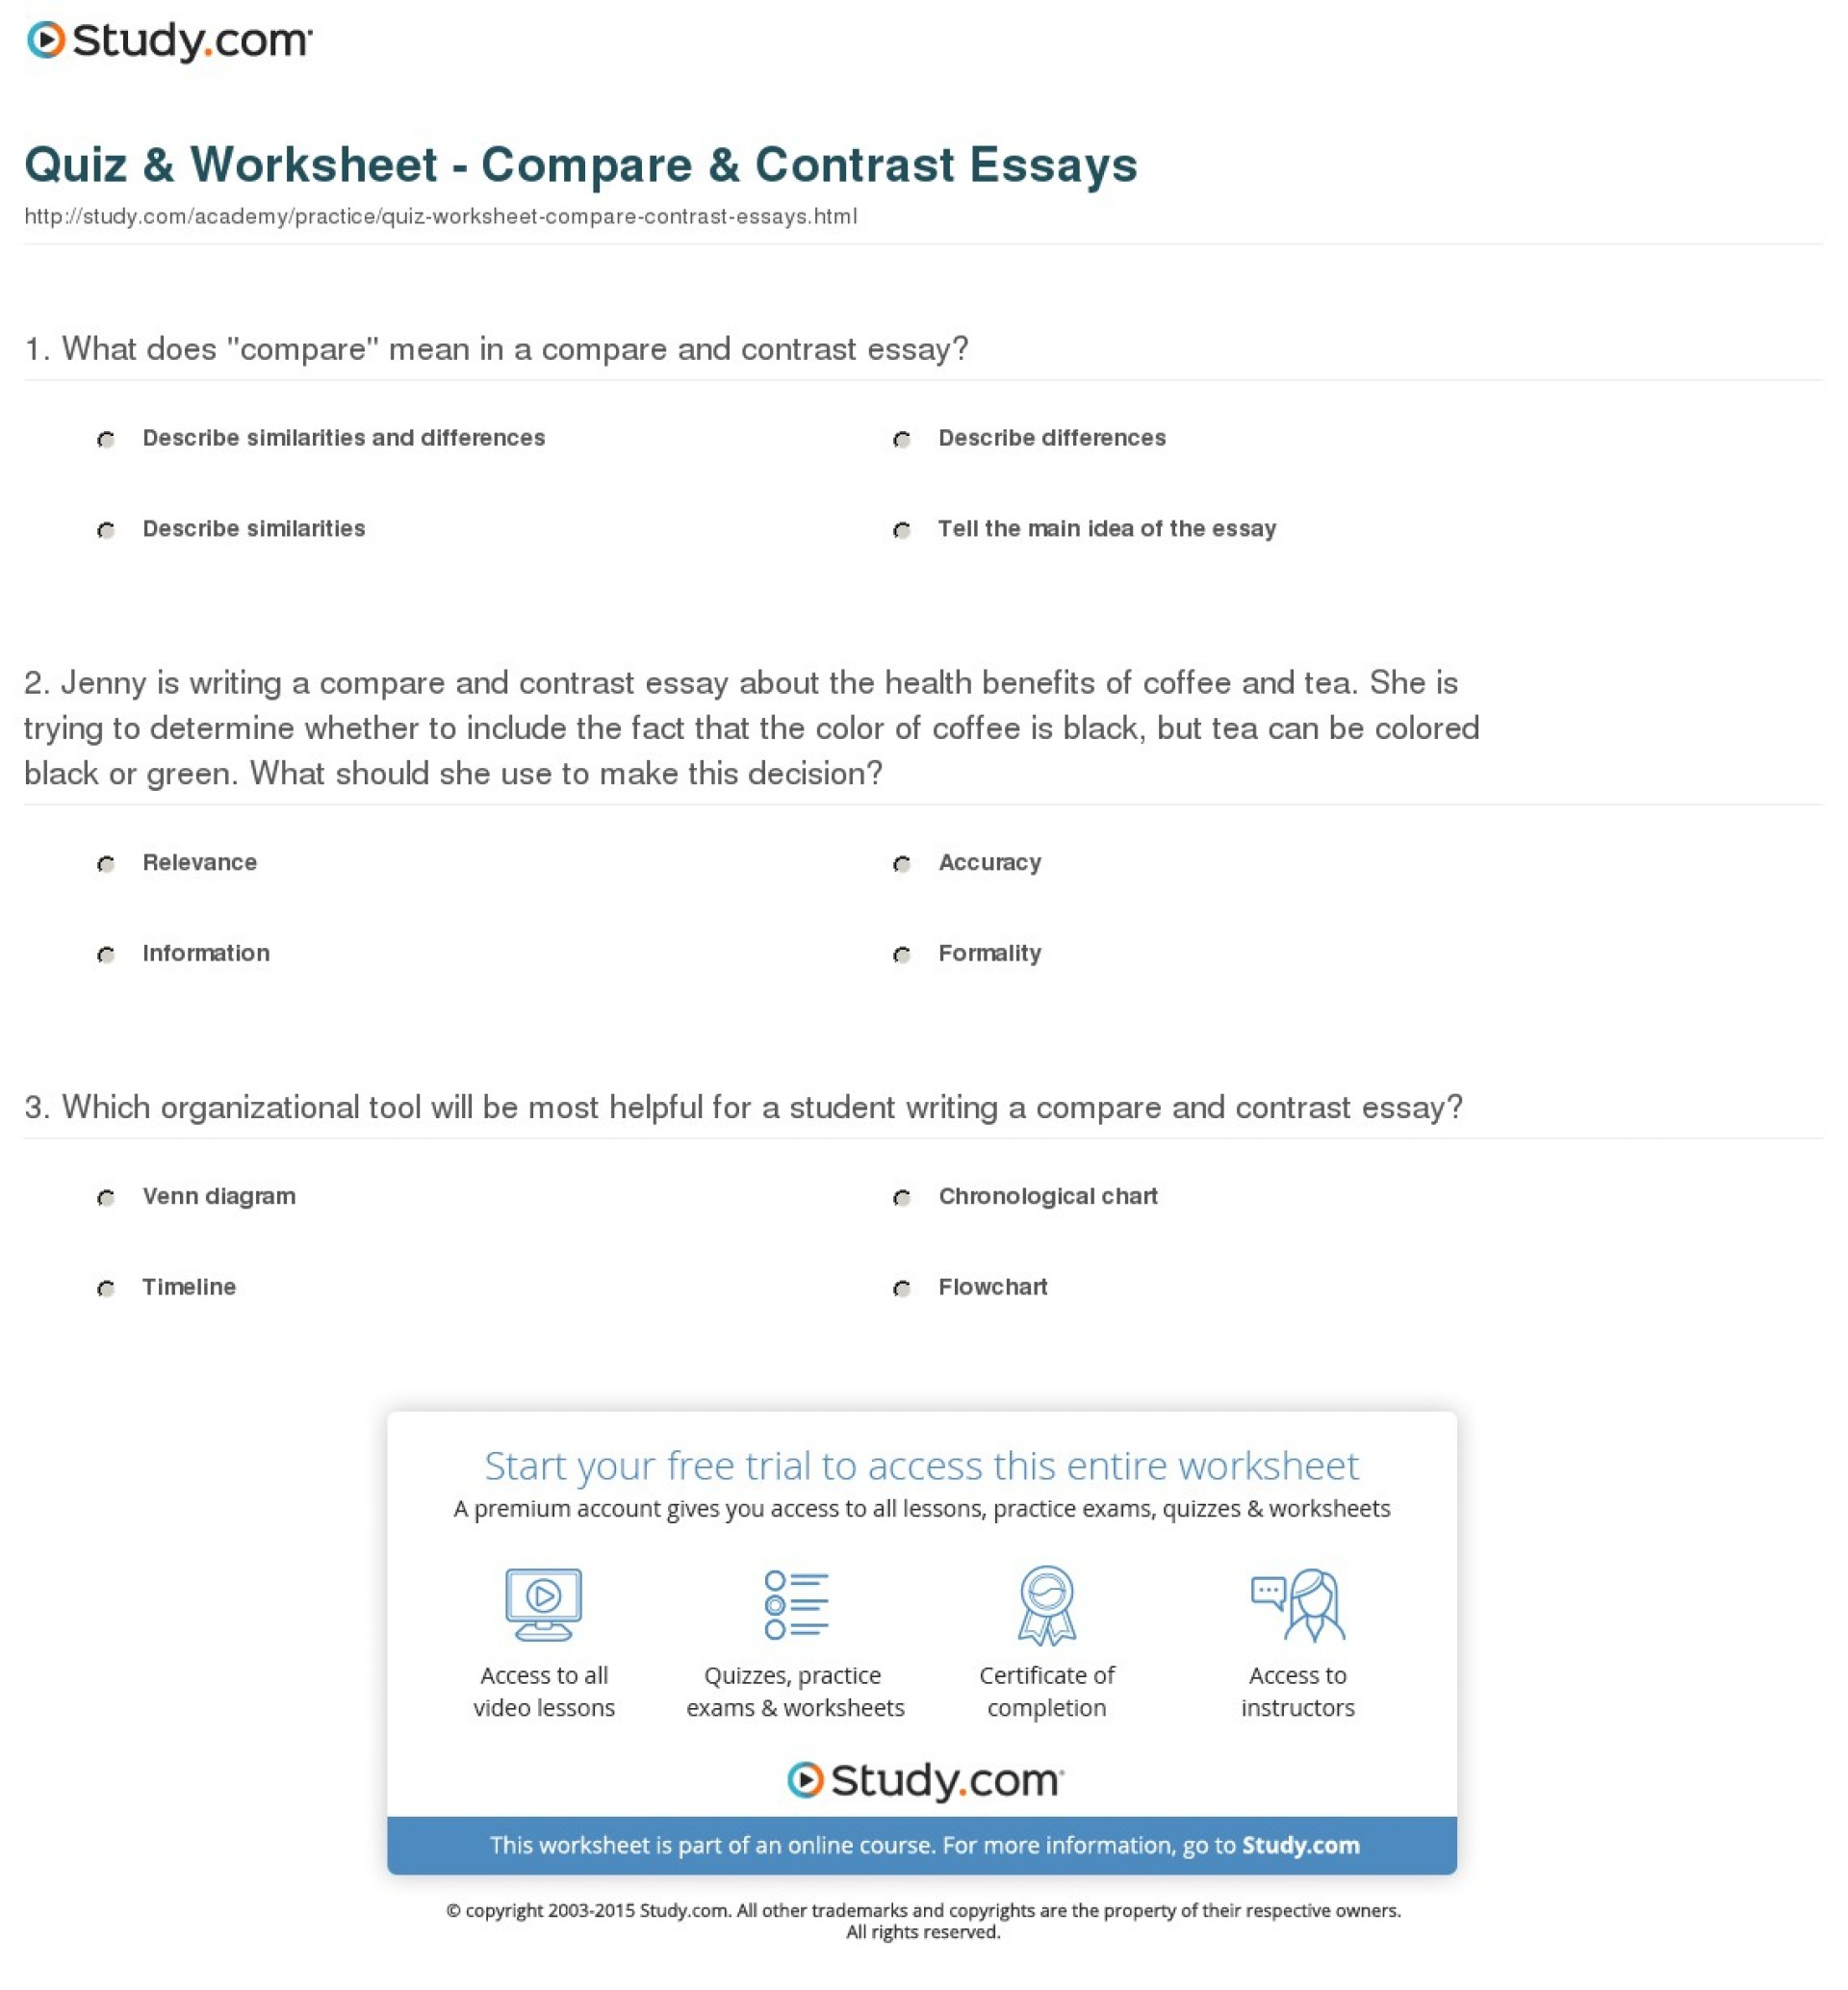 015 Essay Example Compare And Contrast Quiz Worksheet Frightening Prompts 5th Grade Rubric College Ideas 12th 1920